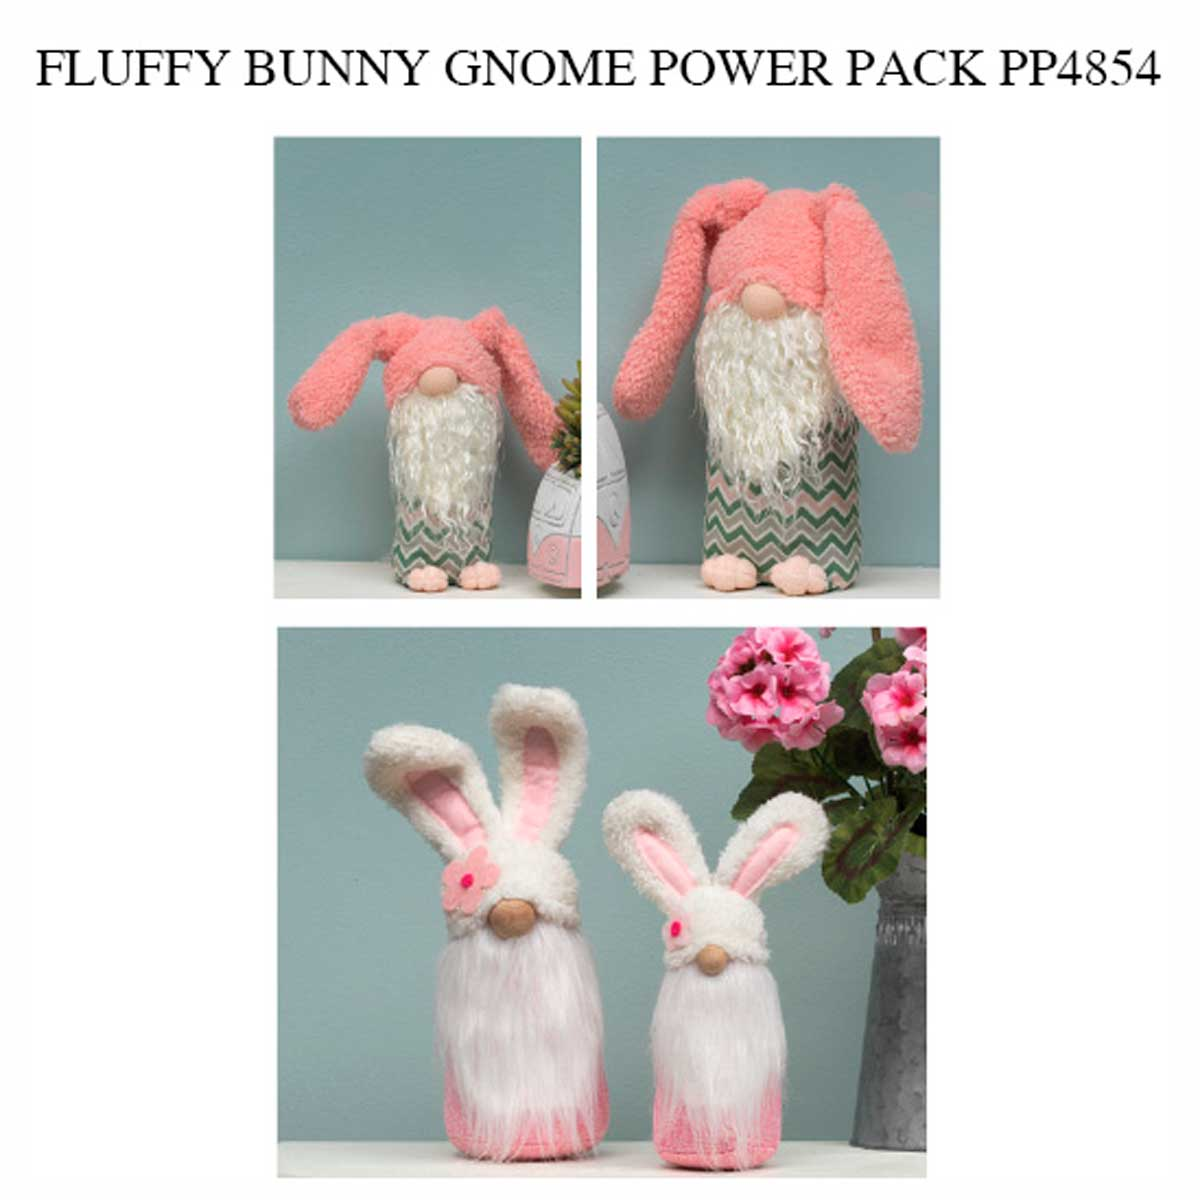 Hunny Bunny and Hobbit Gnome Power Pack 20 Units PP4854